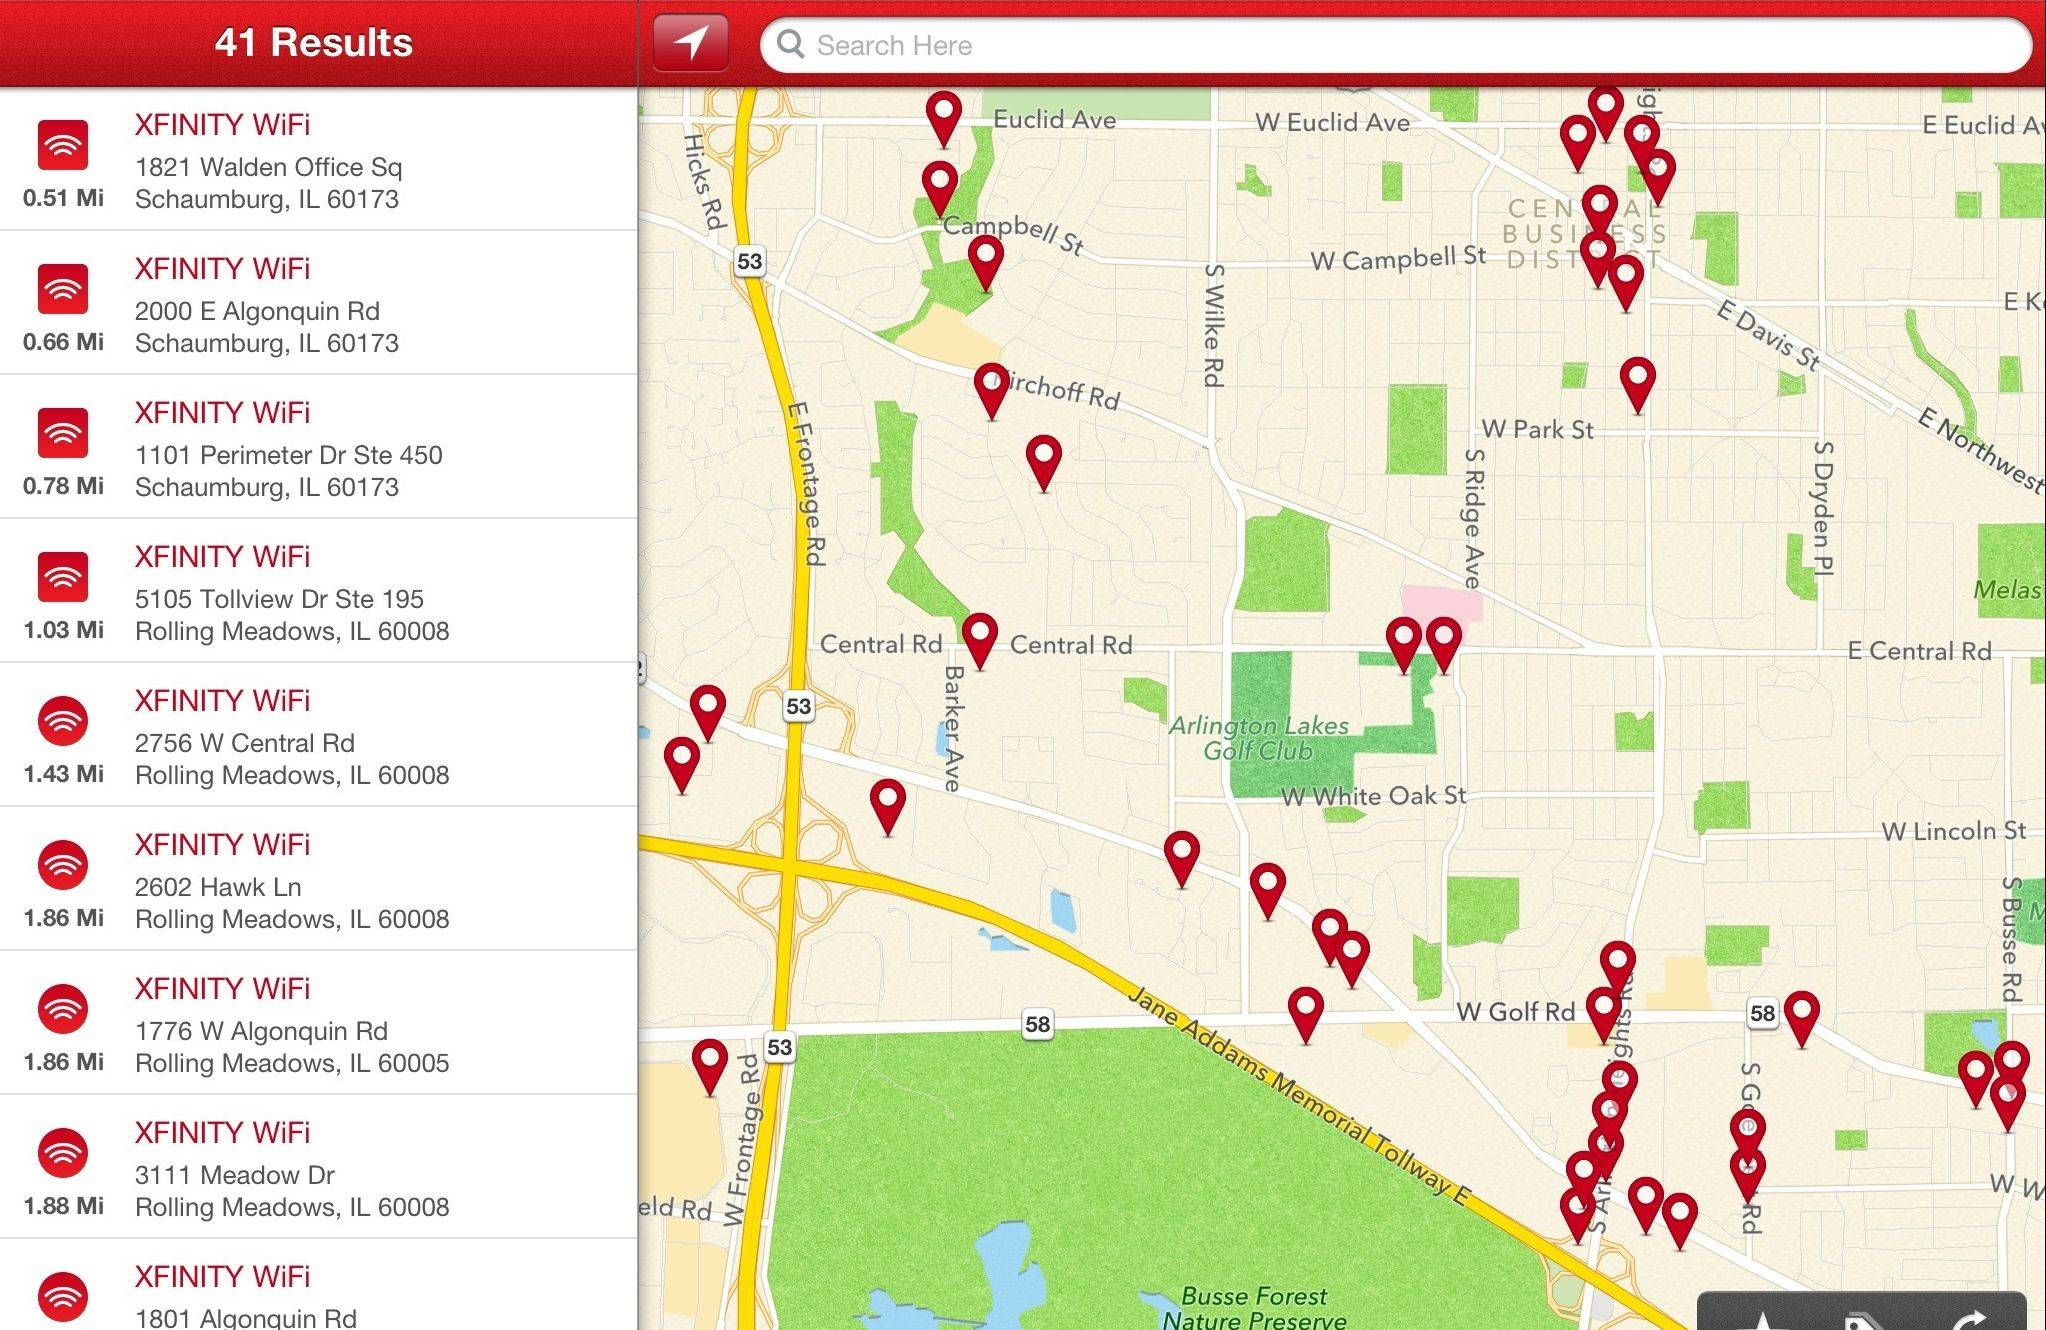 The Xfinity Wi-Fi app locates hot spots for its service in Chicago's suburbs.